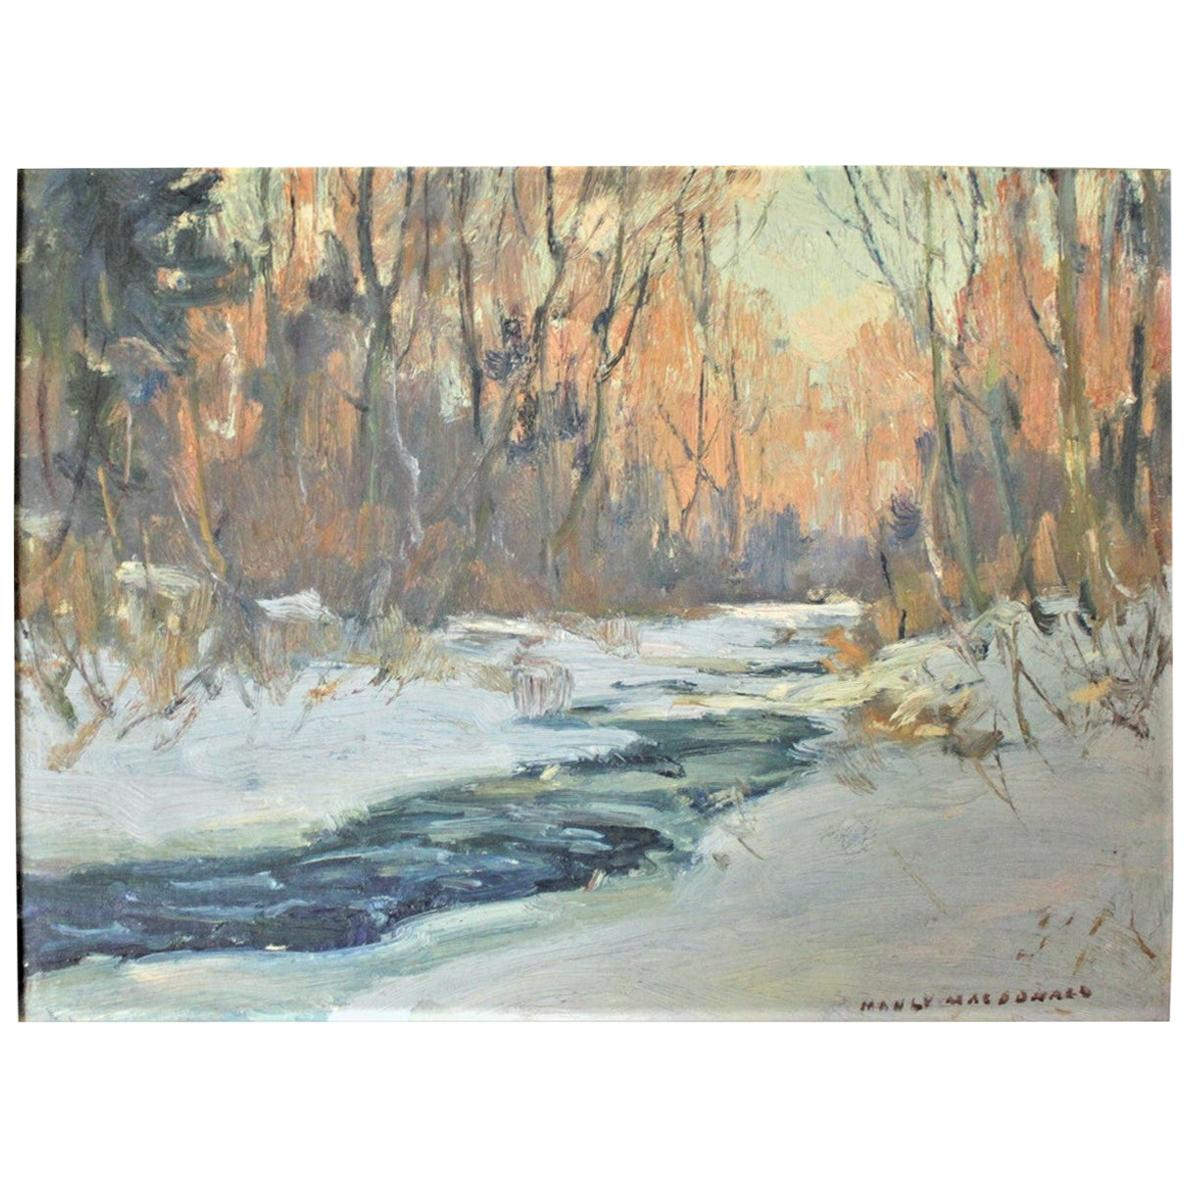 Original Manly E. MacDonald 'Canadian' Oil on Canvas Board Landscape Painting